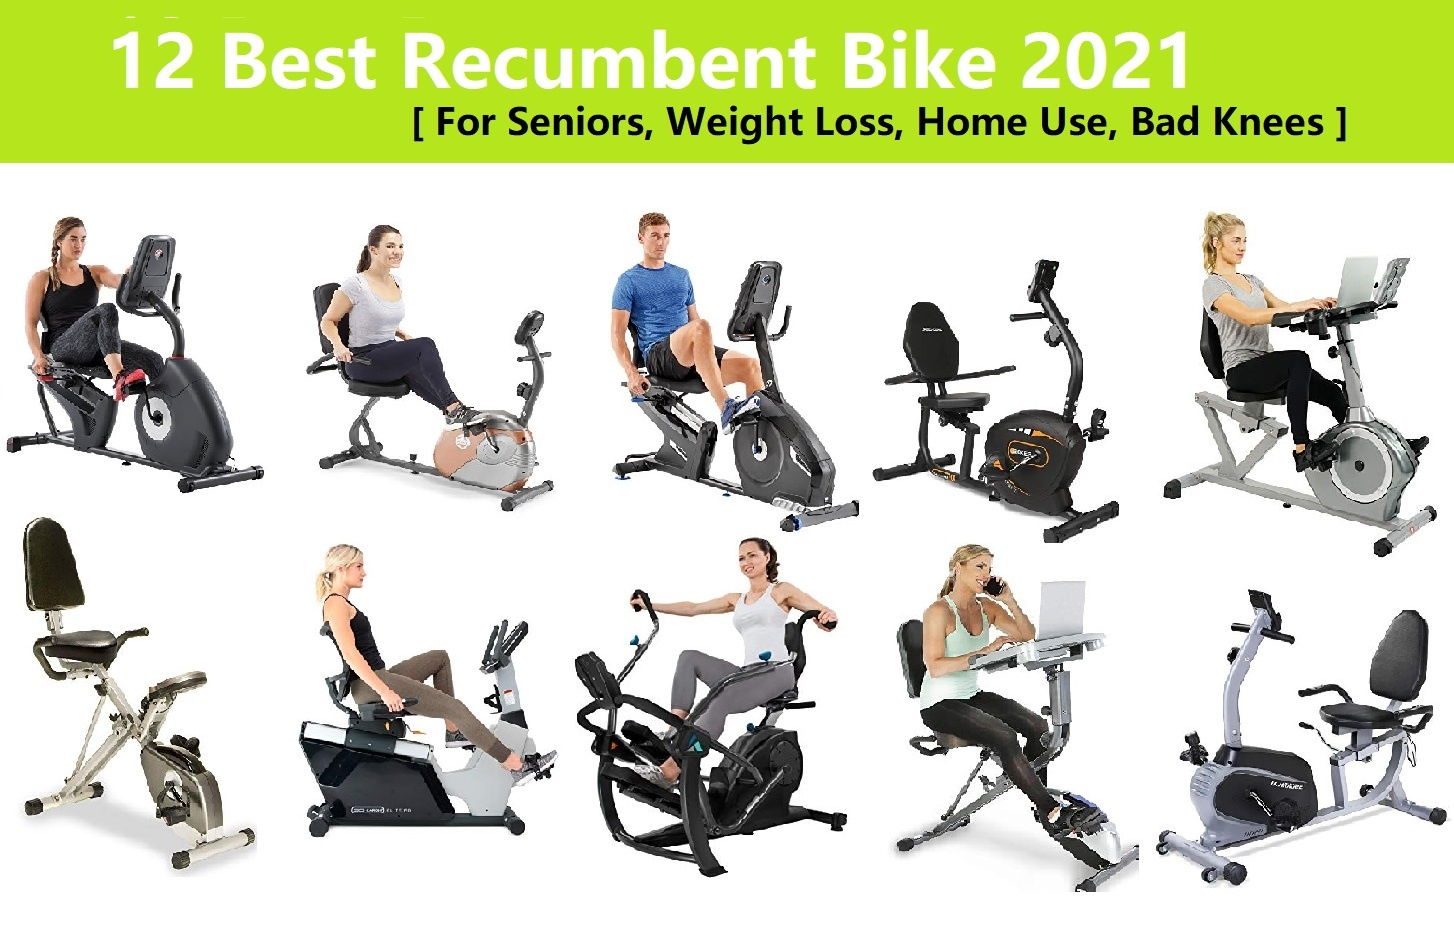 12 Best Recumbent Bike 2021 for Seniors, Weight Loss, Home Use, Bad Knees